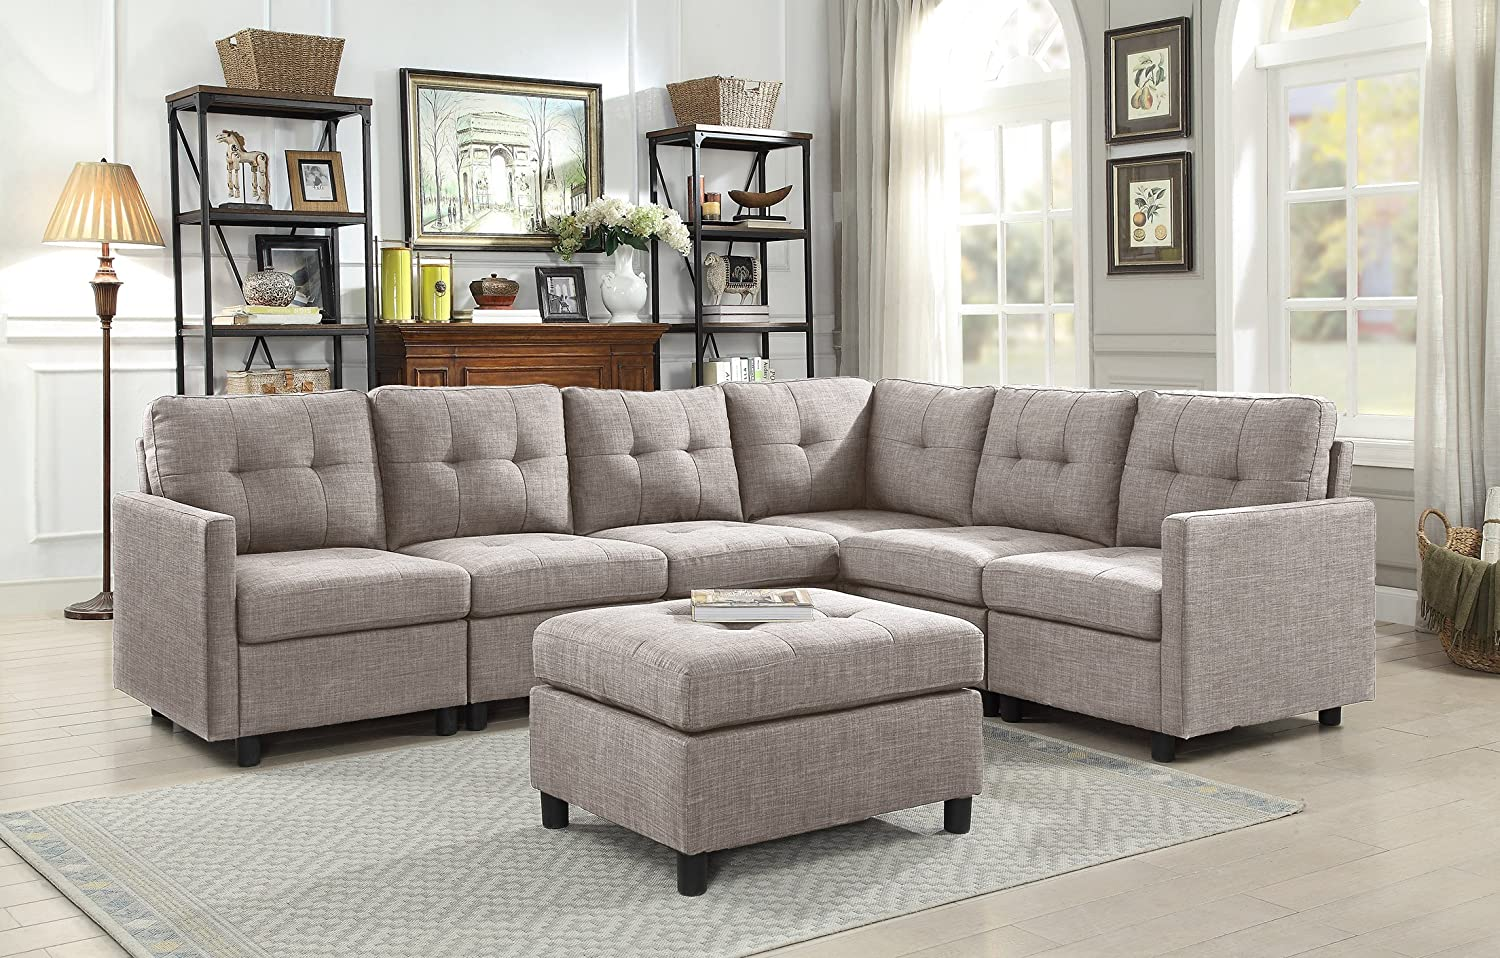 DAZONE Modular Sectional Sofa Assemble 7-Piece Modular Sectional Sofas  Bundle Set Cushions, Easy to Assemble Left & Right Arm Chair,Armless Chair,  ...